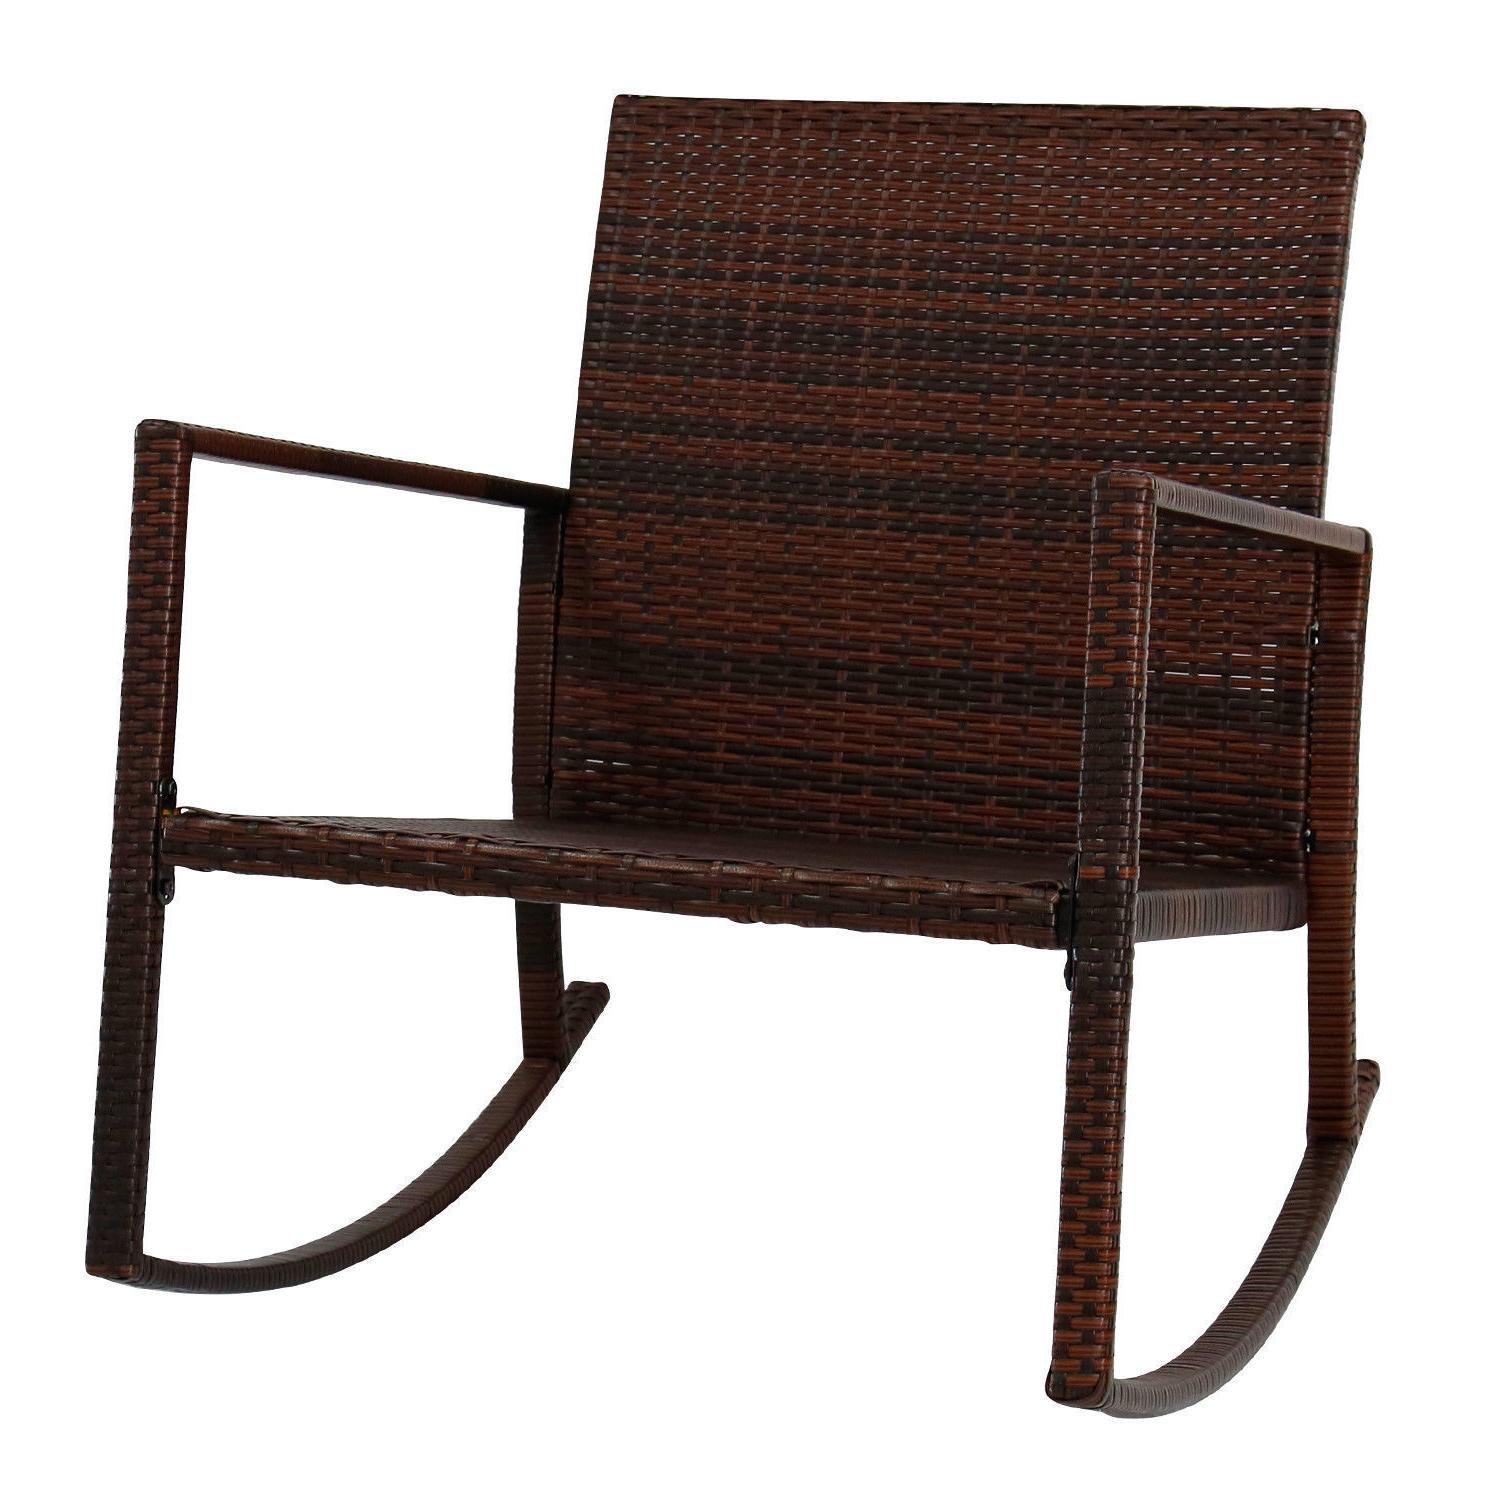 Outdoor Wicker Rocking Chair Furniture Seat